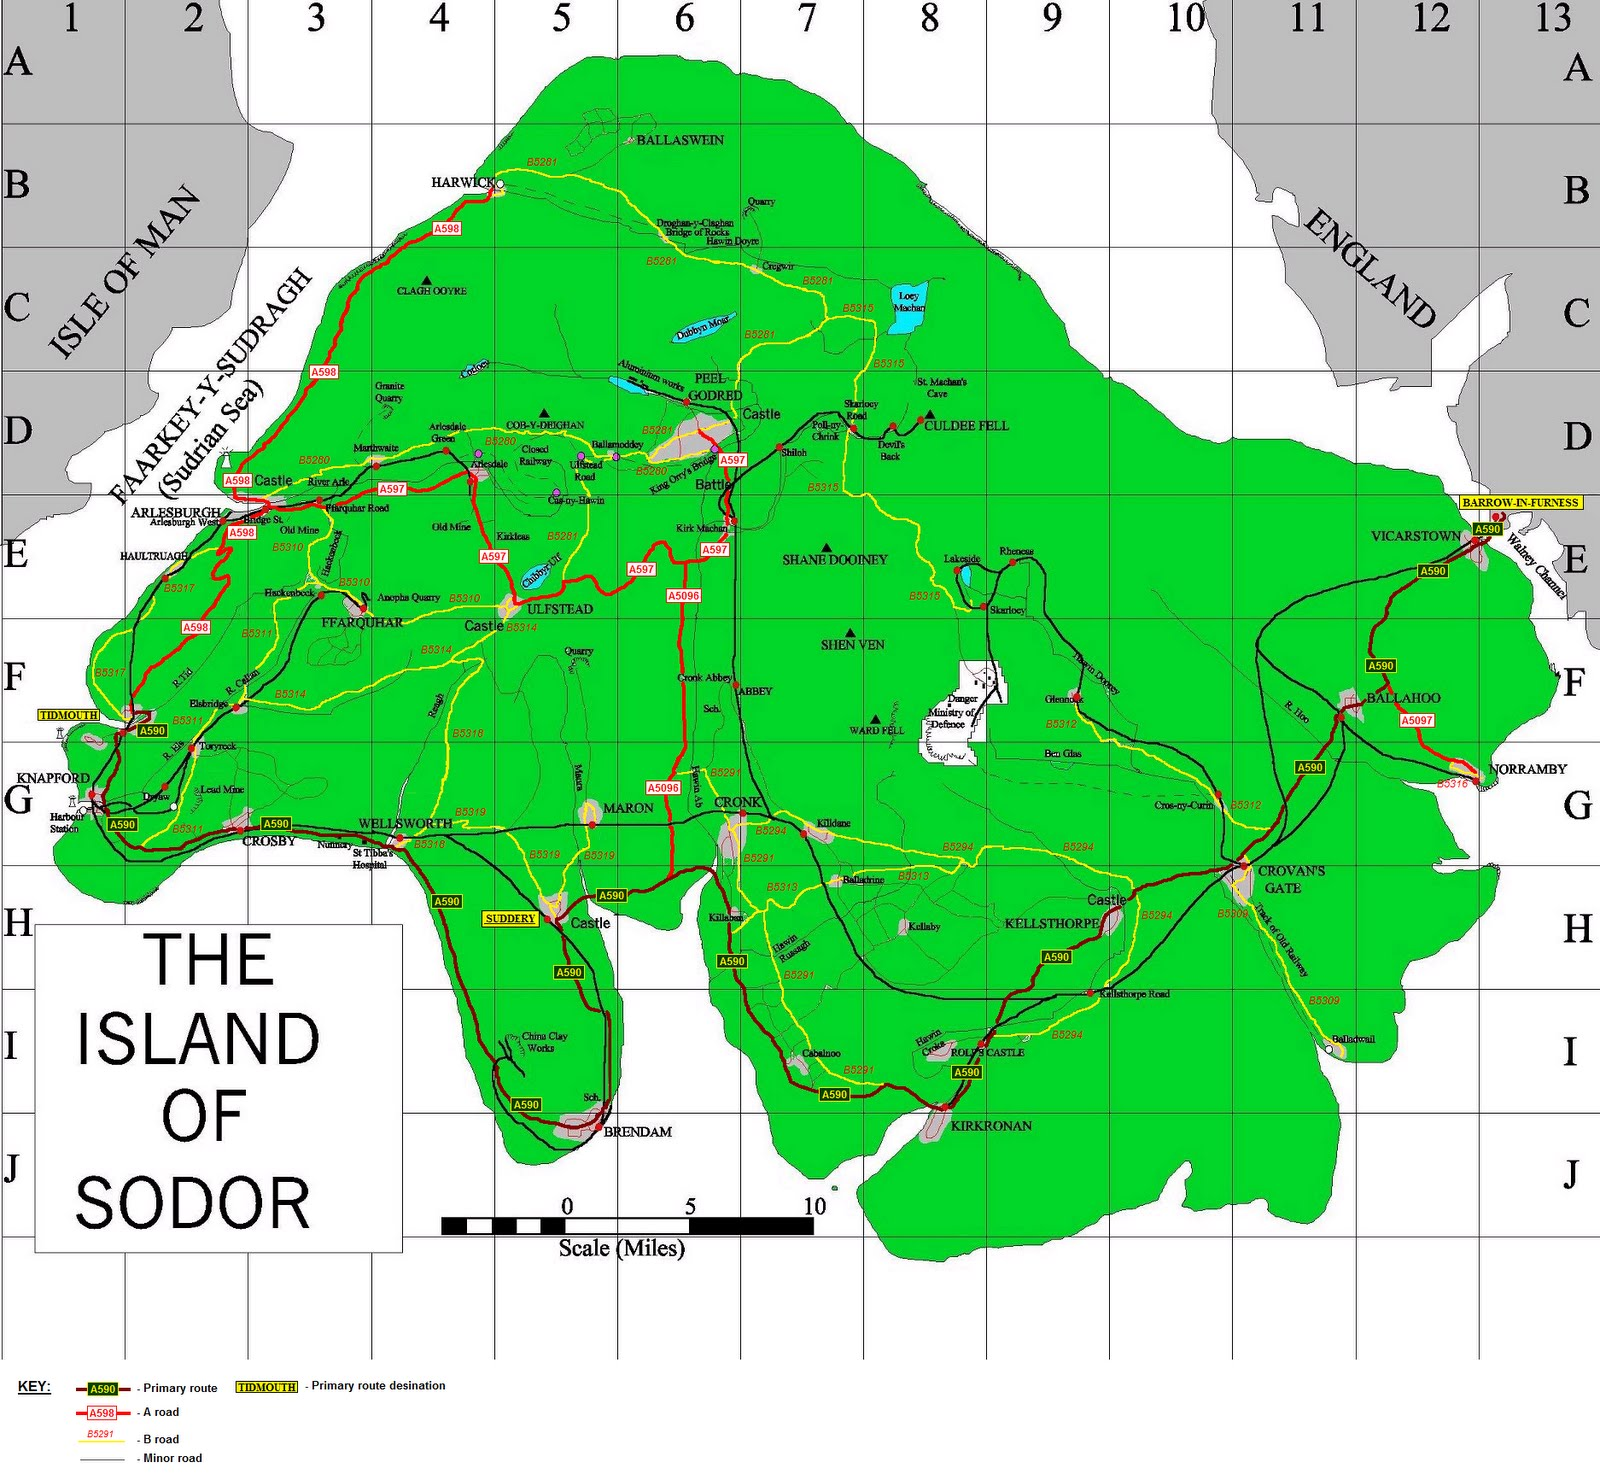 road and rail map of sodor my own intepretation